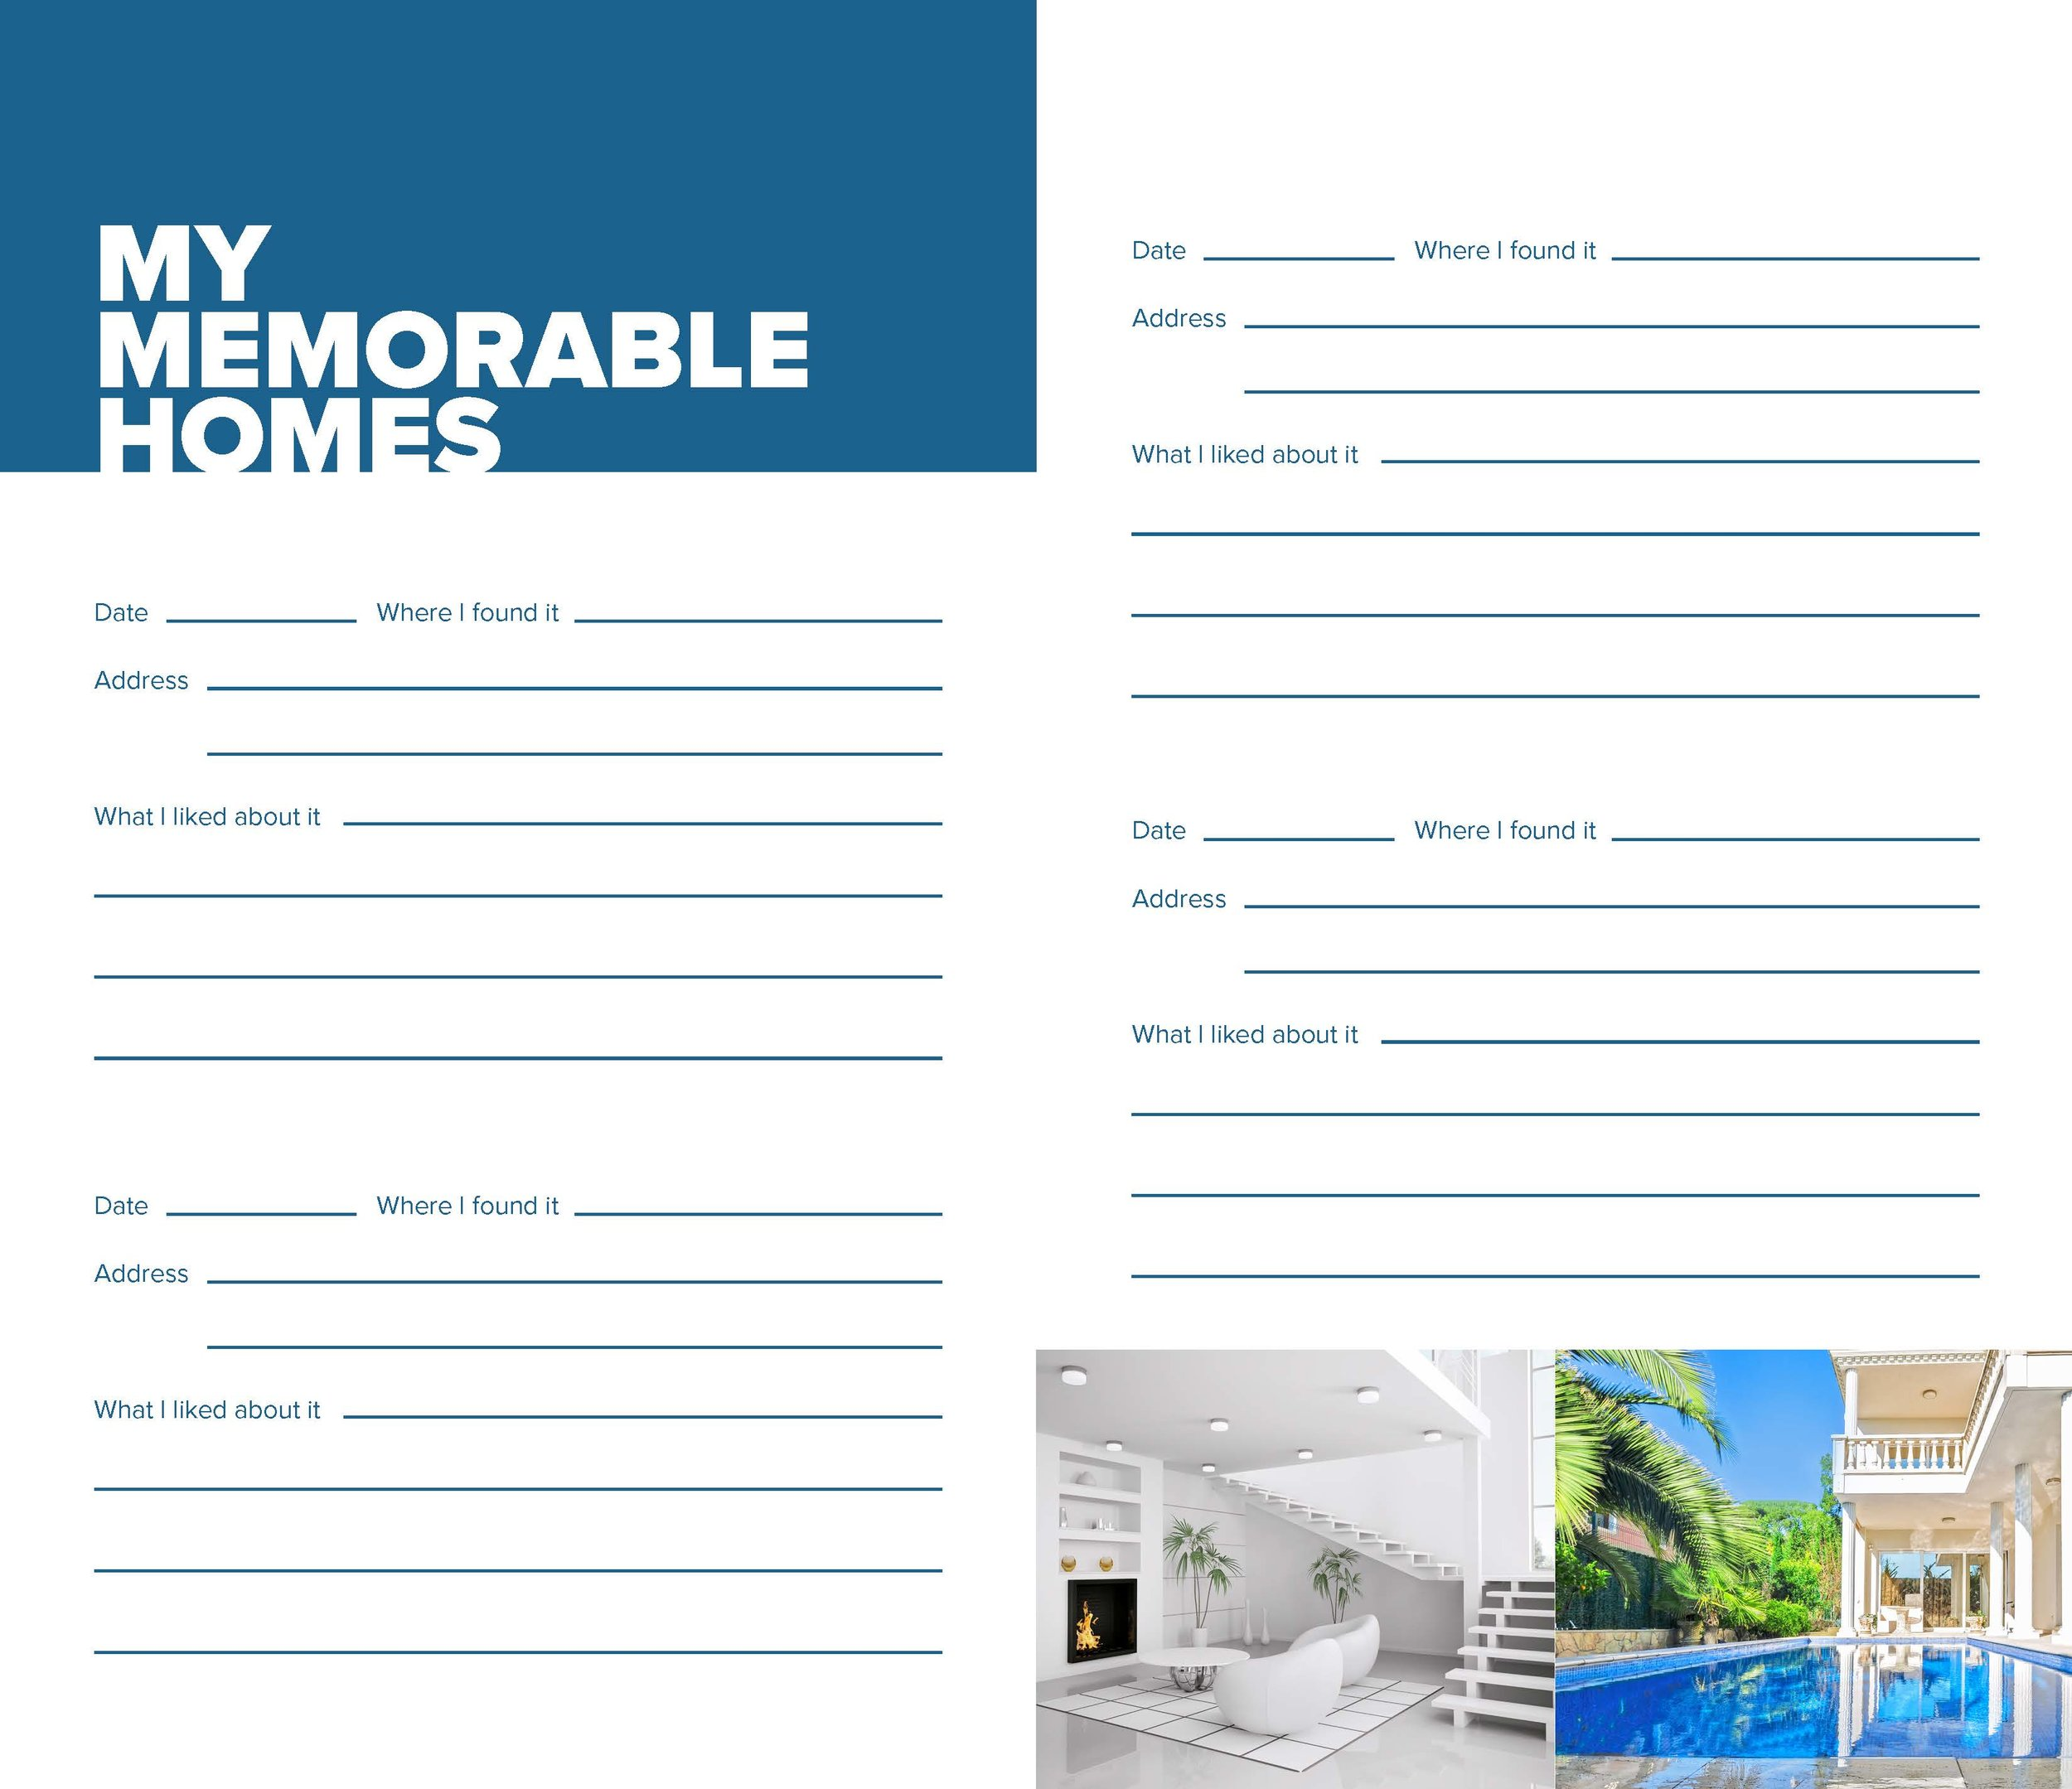 myjourneyhome-spread_Page_09.jpg